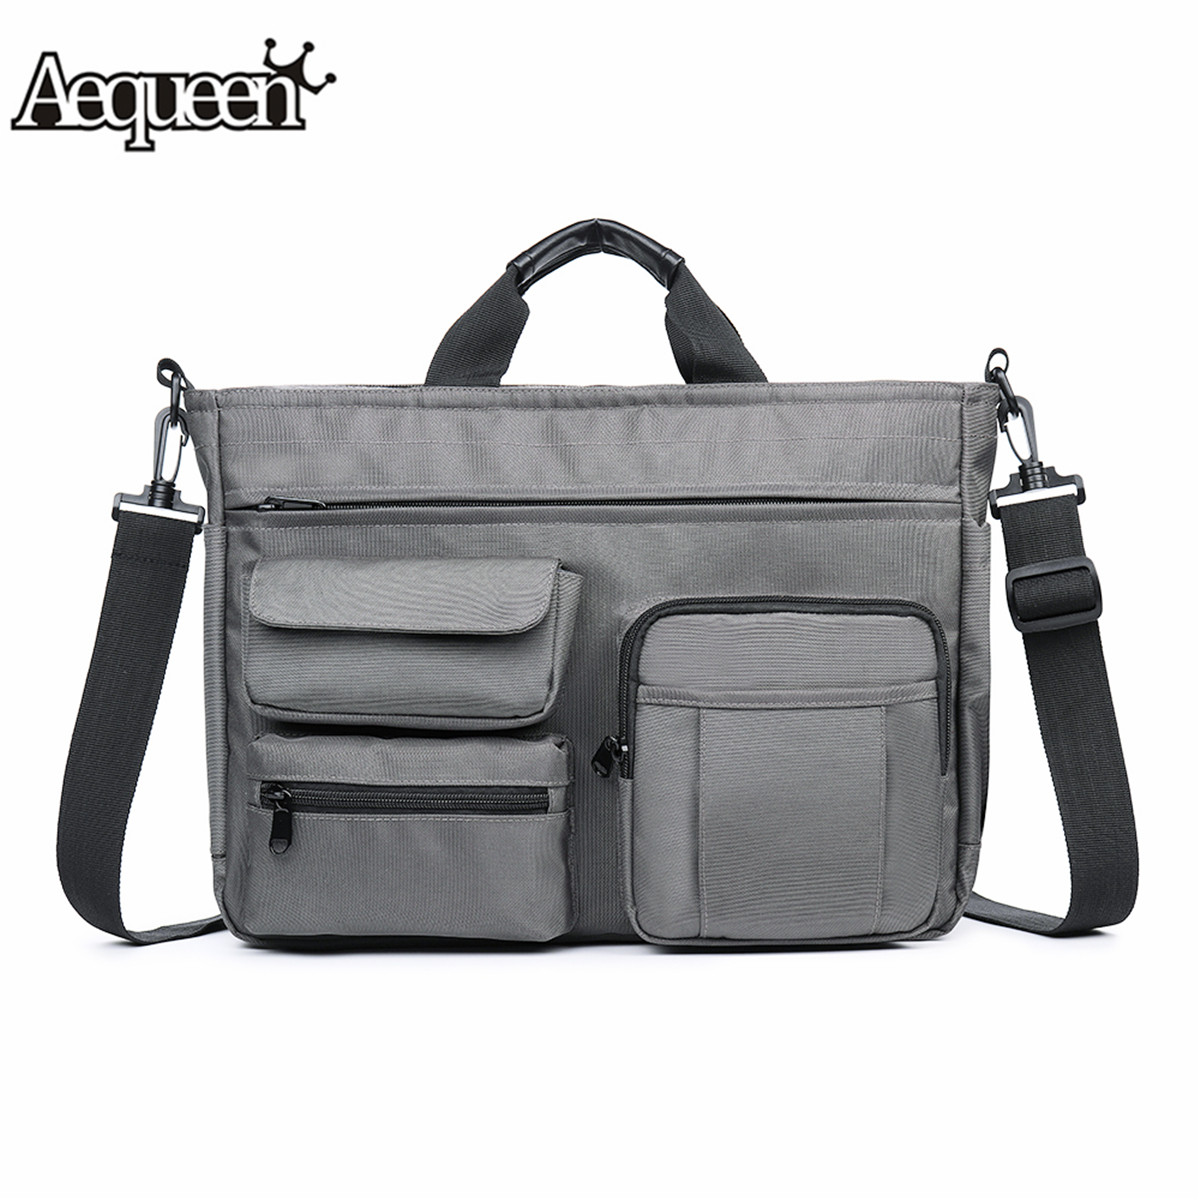 Aequeen Fashion Office Bags For Men Nylon Waterproof Briefcase 14 Inch Laptop Tote Bag Multi-pocket Male Business Messenger Bags